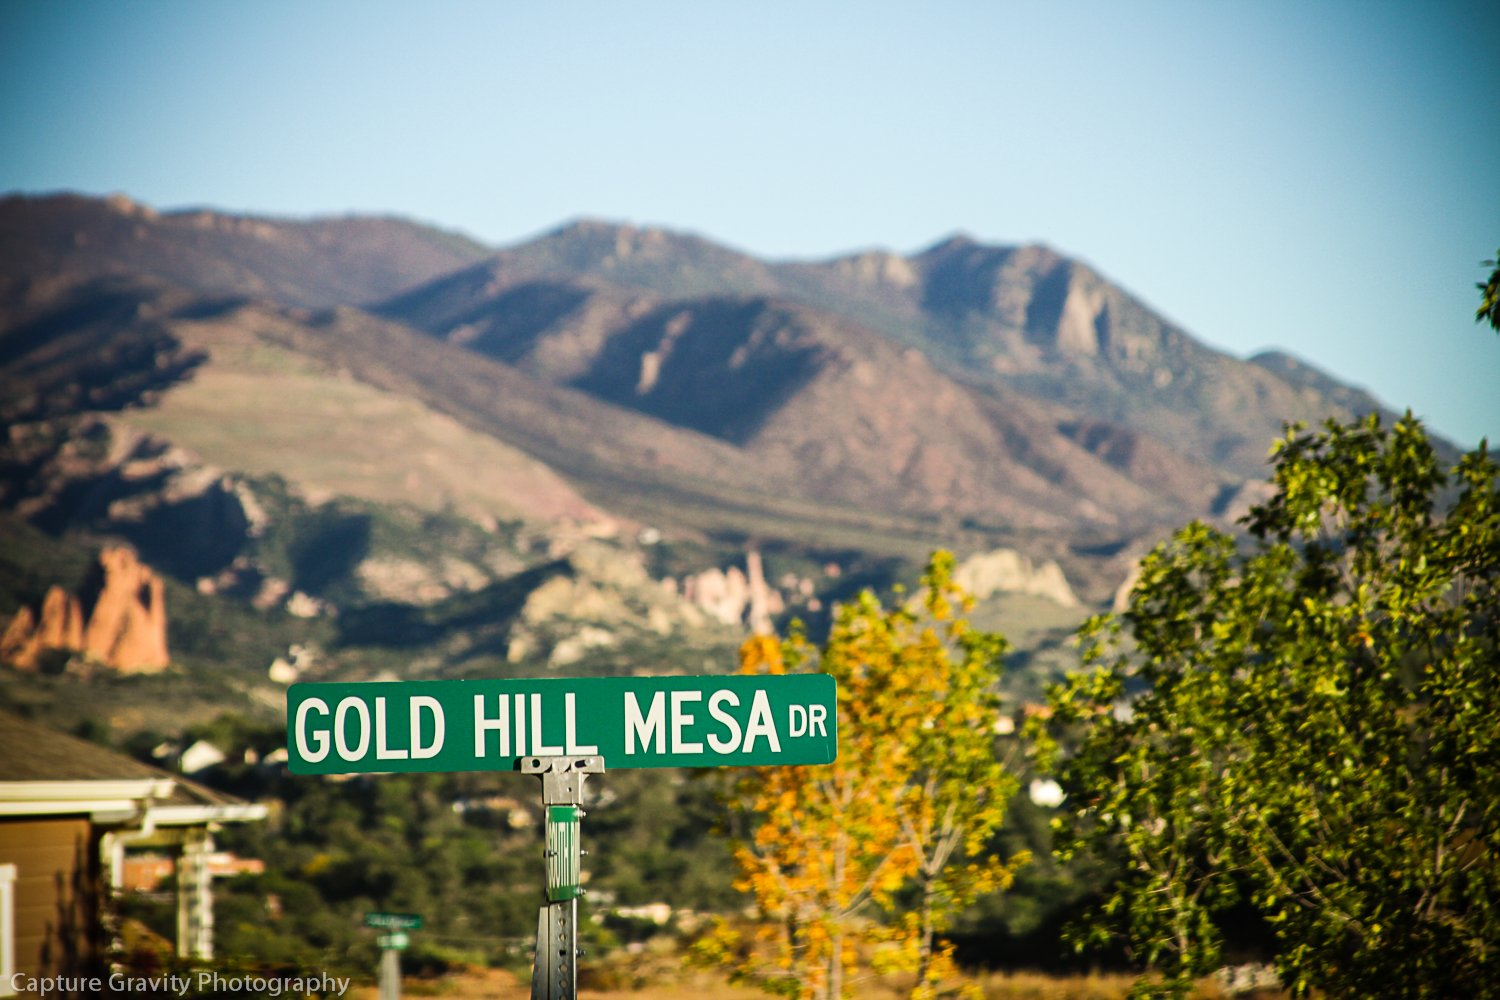 Gold Hill Mesa The New Suburbia on the Westside of